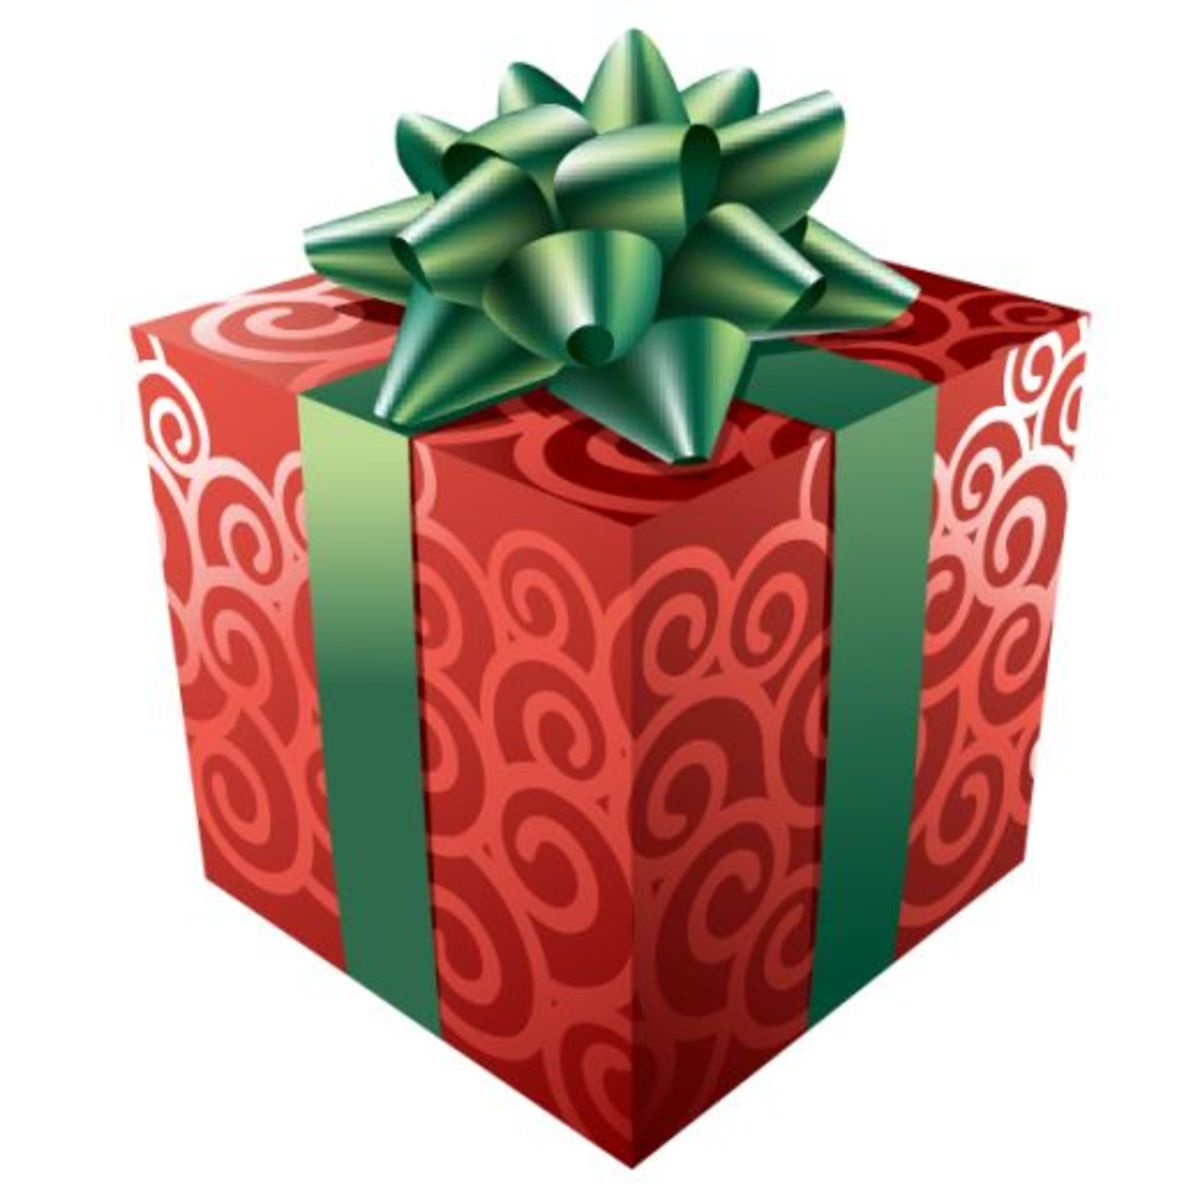 Christmas presents are usually nicely gift wrapped with bows and string, attached with gift tags.